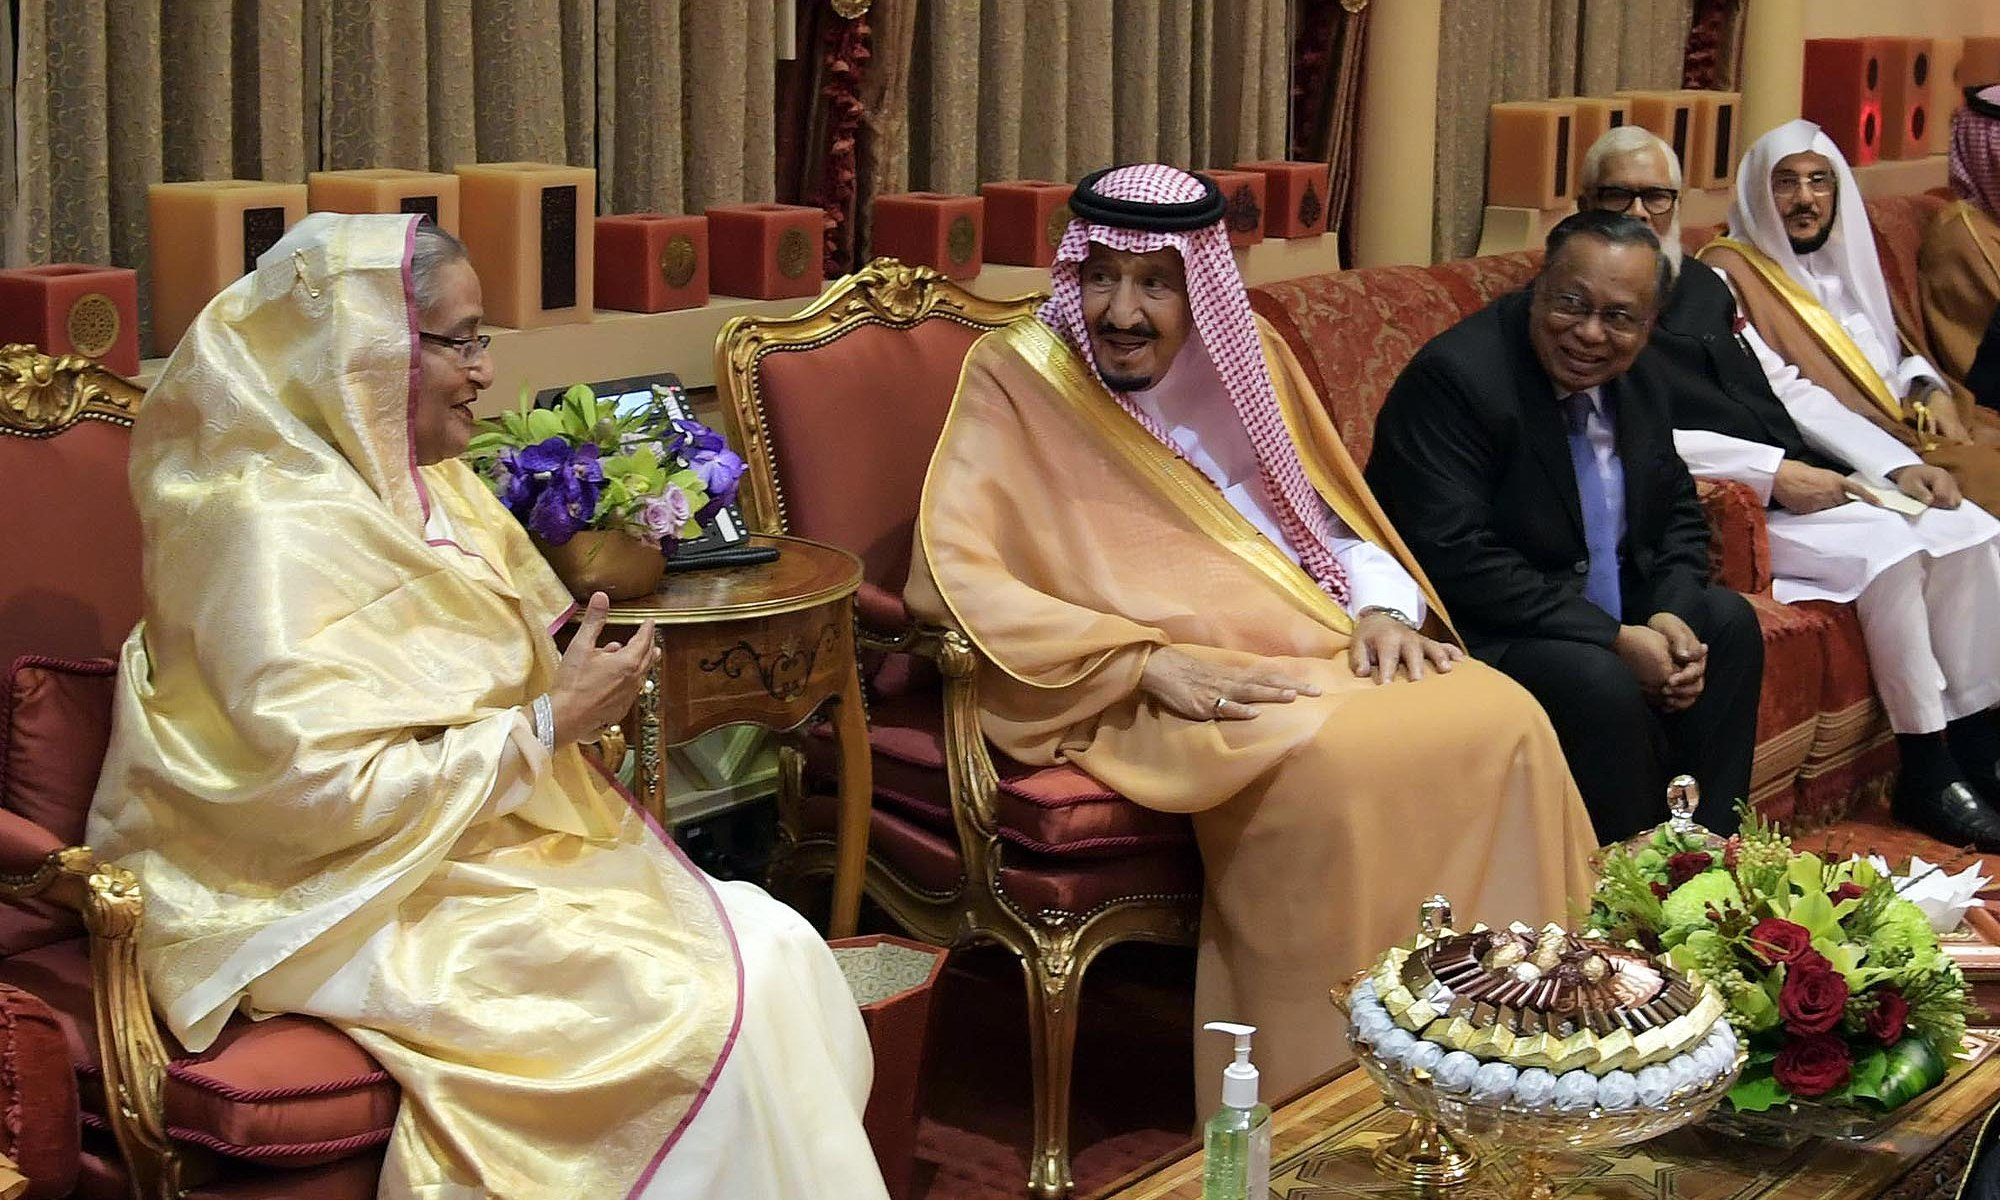 Saudi Kings wishes present govt's continuation, says FS